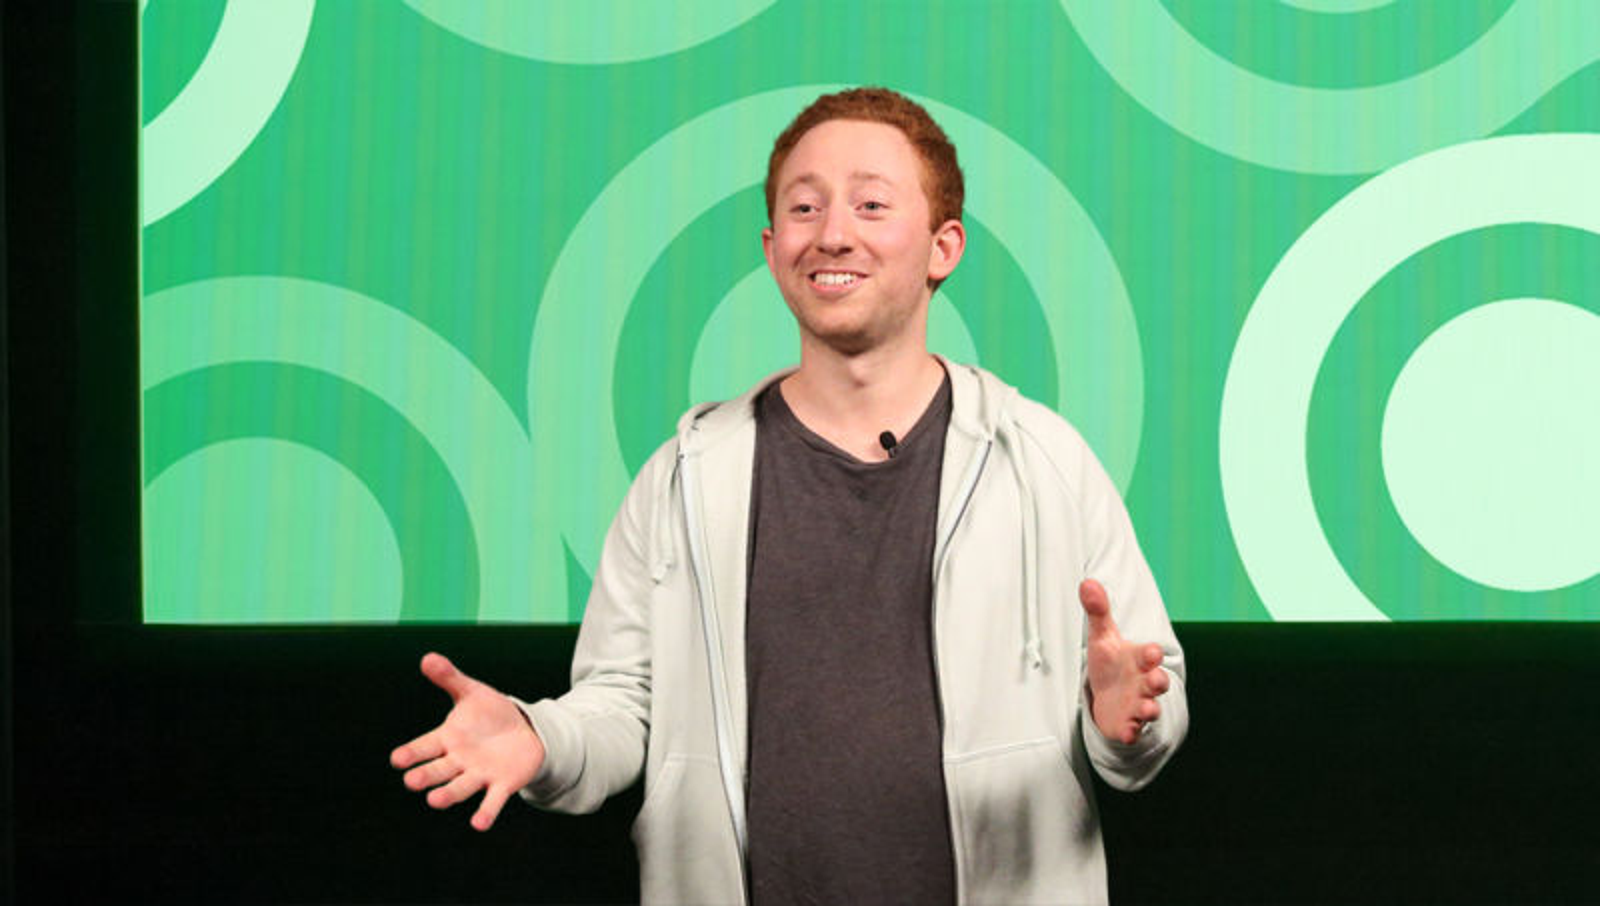 Onion Social CEO: 'We're Proud To Announce The First Genital Recognition Software'